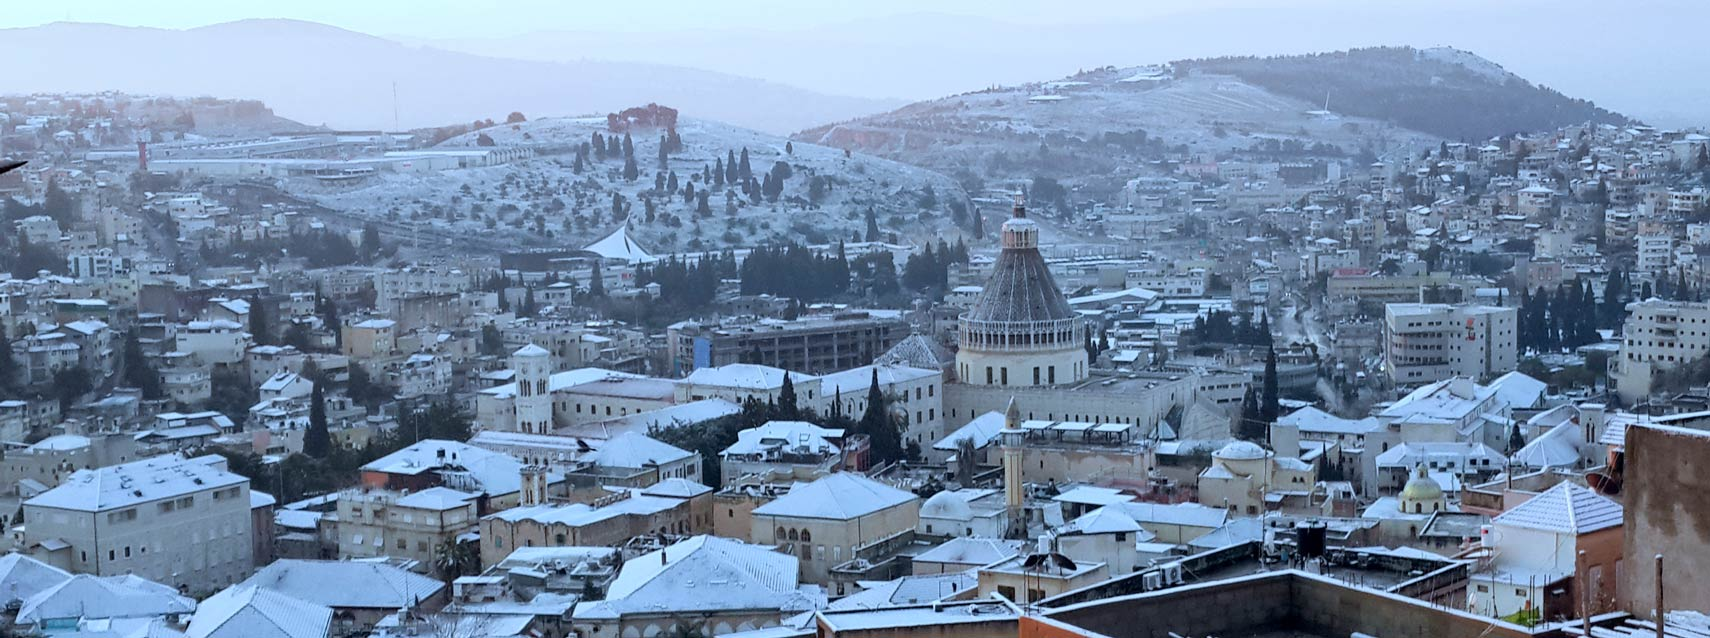 Snow in the city of Nazareth in Israel